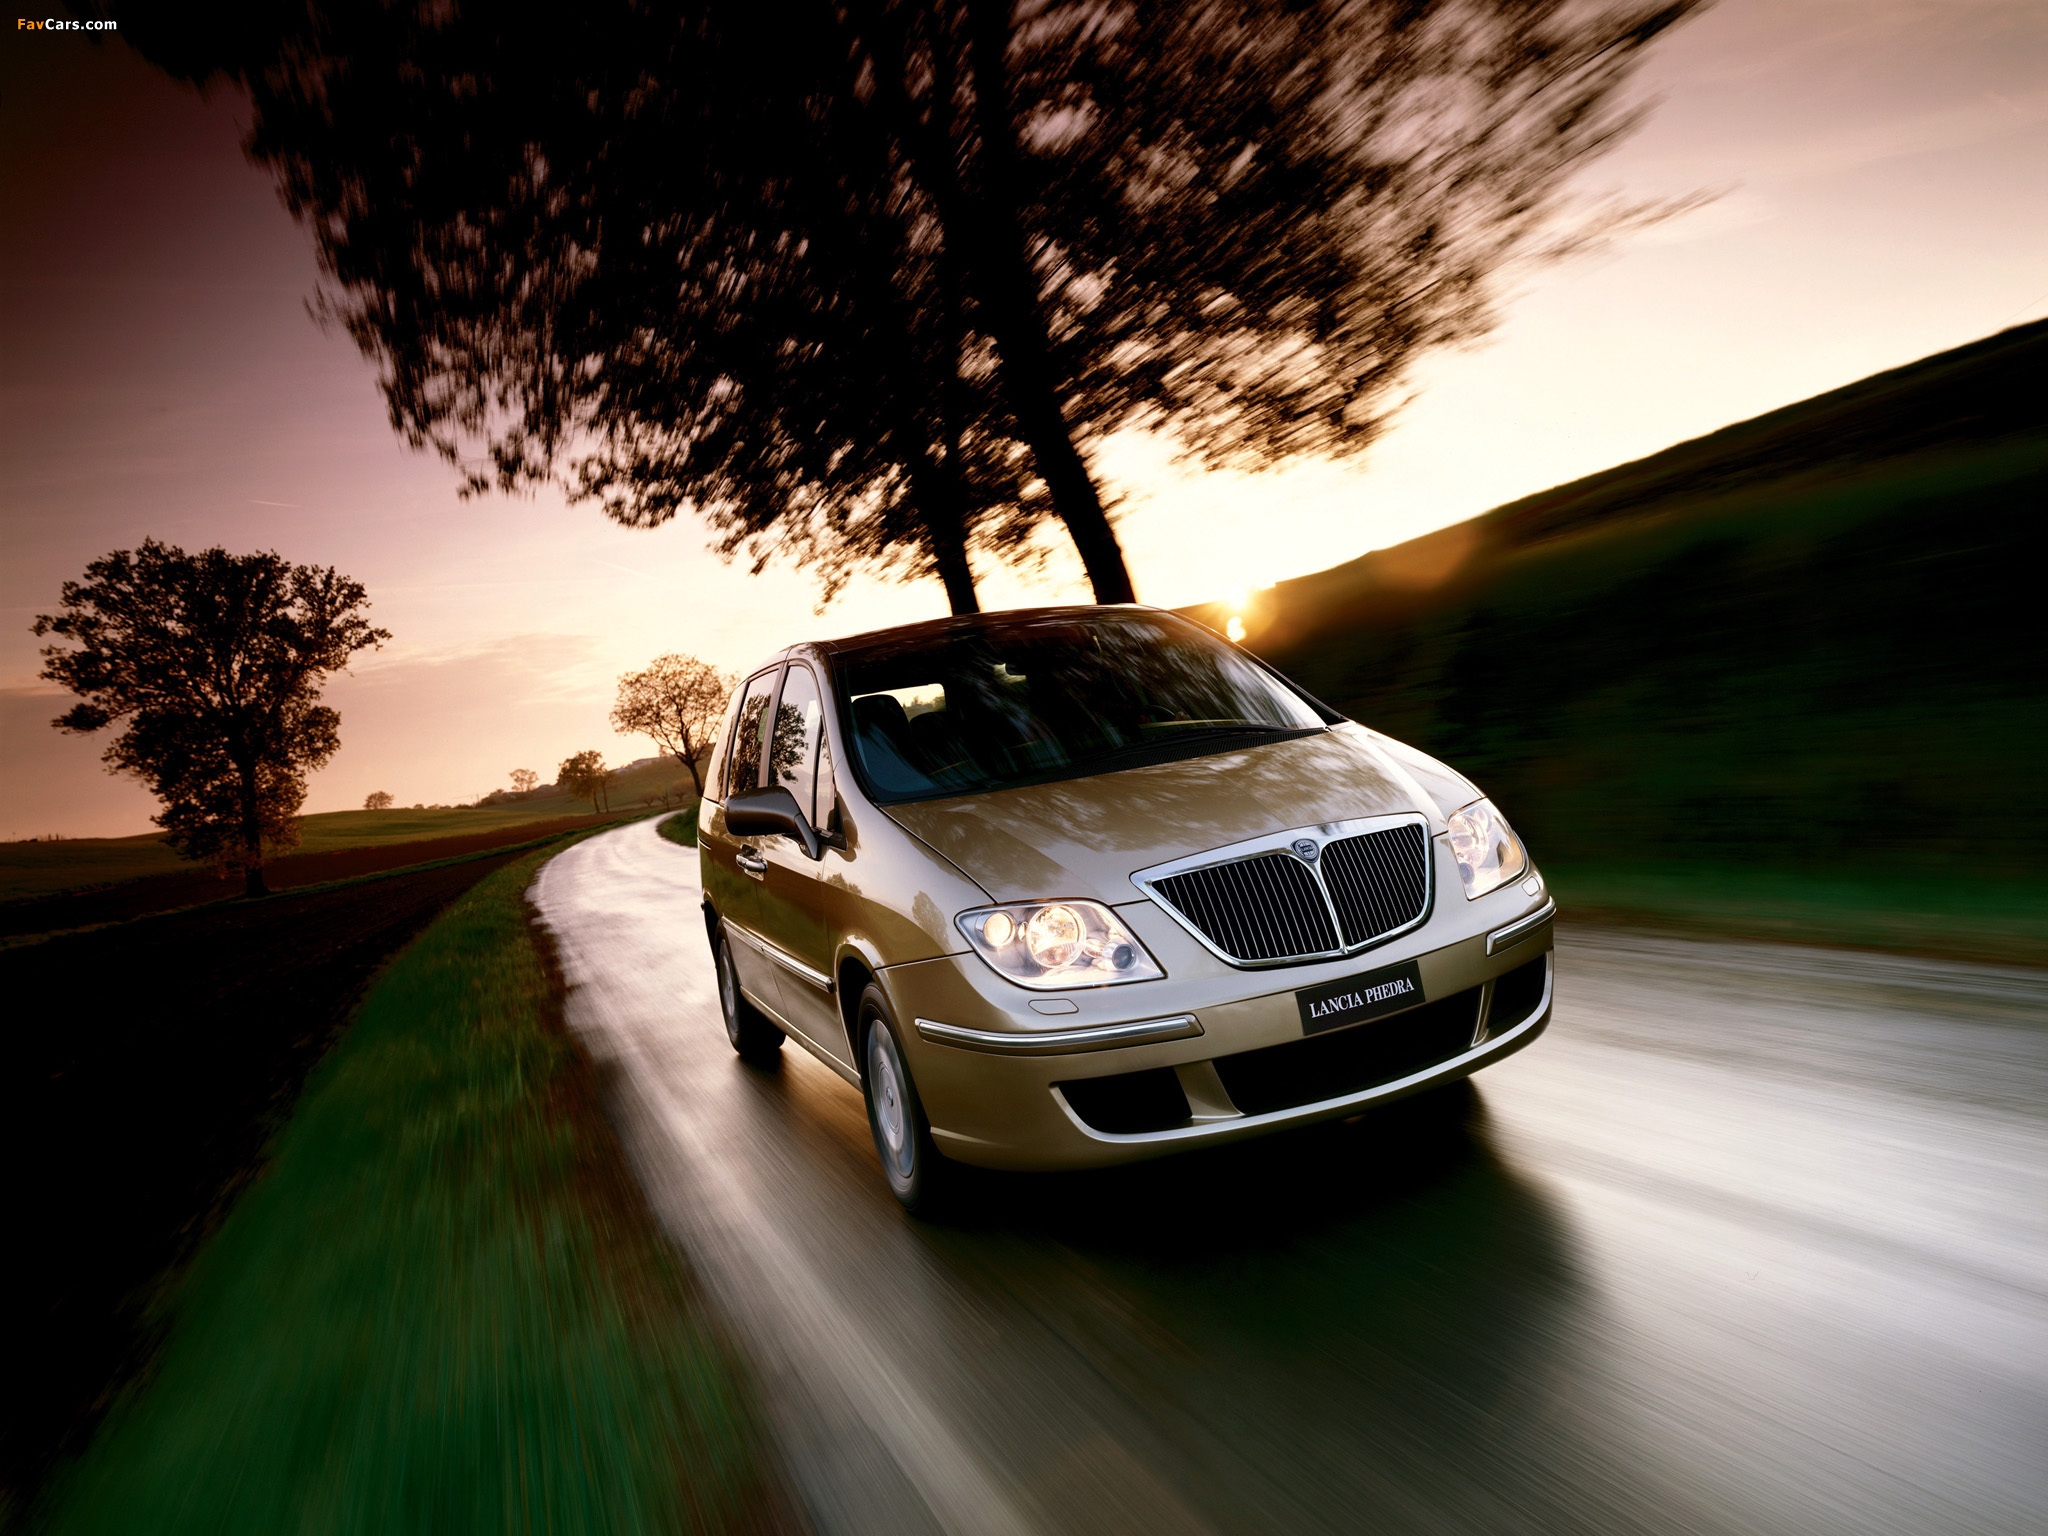 lancia_phedra_2002_wallpapers_1